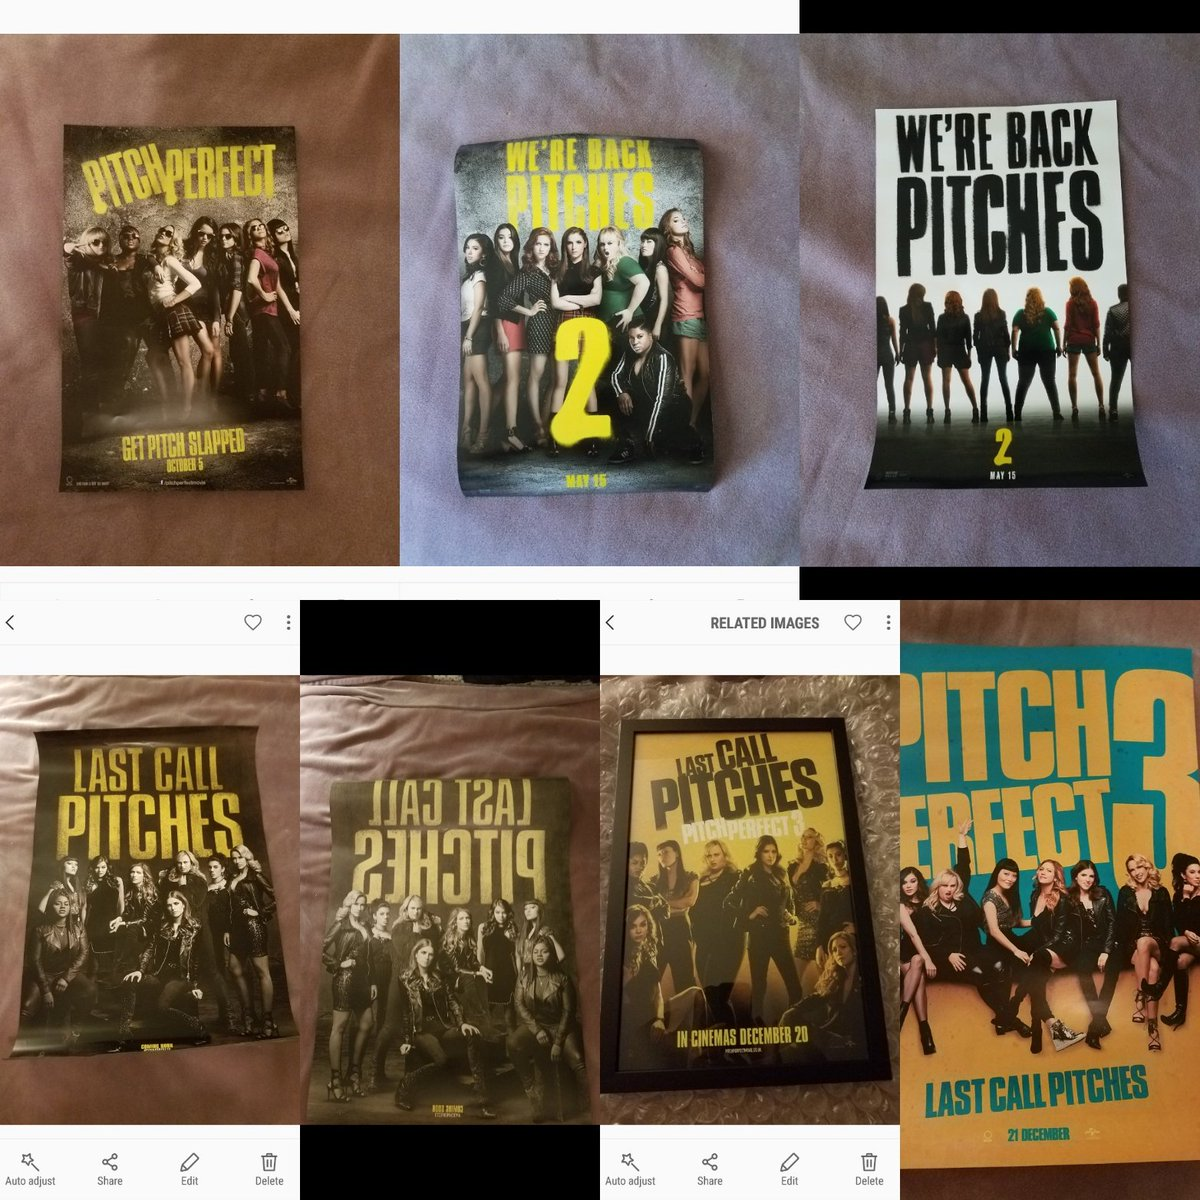 Unless they come out with more... My #PP #PP2 #PP3 poster collection is complete Pitches! @AnnaKendrick47 @Brittanysnow @TheRealAnnaCamp @RebelWilson @EsterDean @hanamaelee @HaileeSteinfeld @chrissiefit @AlexisKnapp @ShelleyRegner @kelleyjakle<br>http://pic.twitter.com/z528XrVMpS